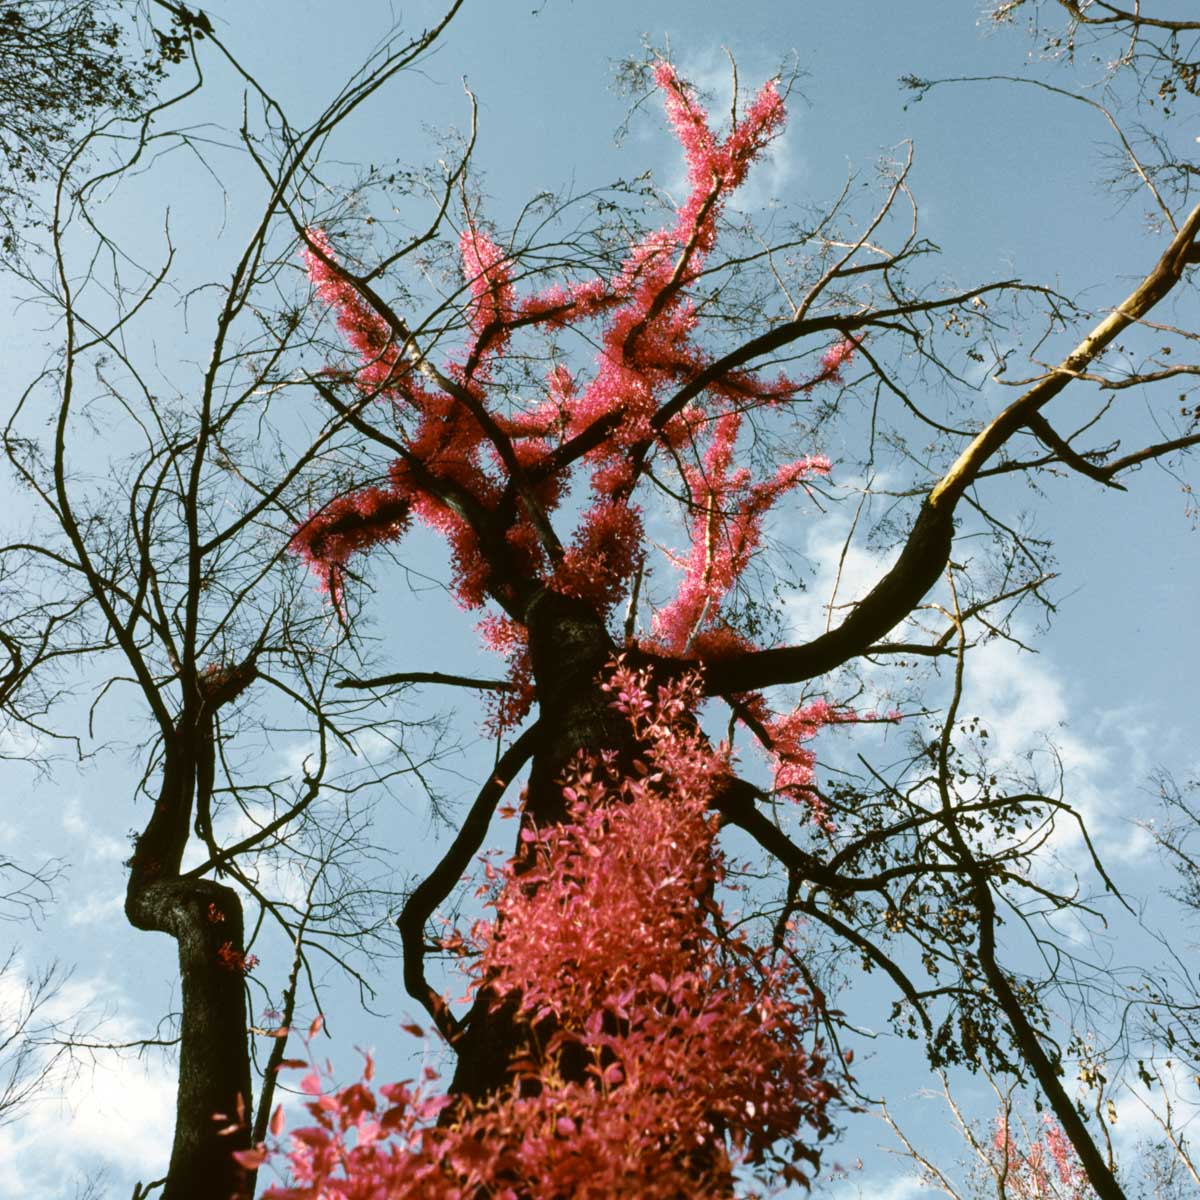 Still Burning - Bronica SQ-A // Kodak AEROCHROME 0